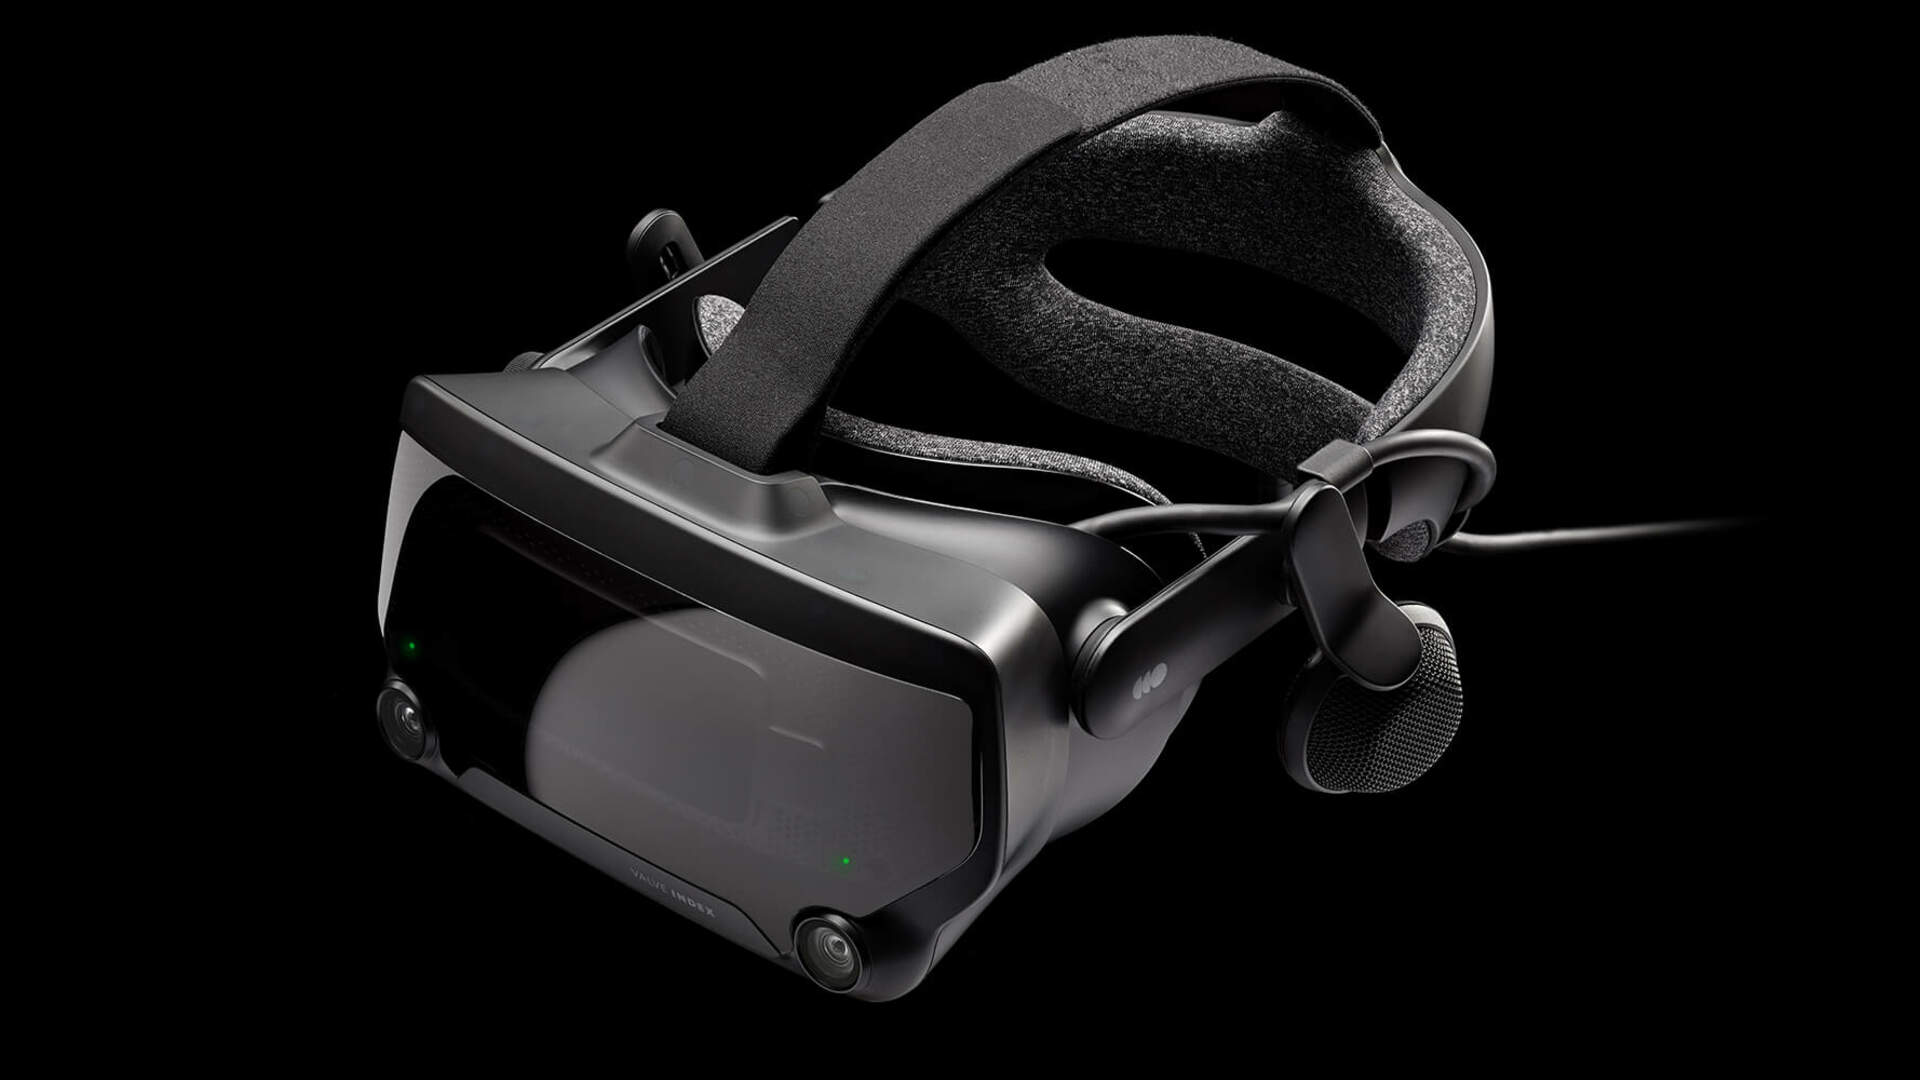 Valve's Index VR Headset is Sleek, Powerful, and Expensive